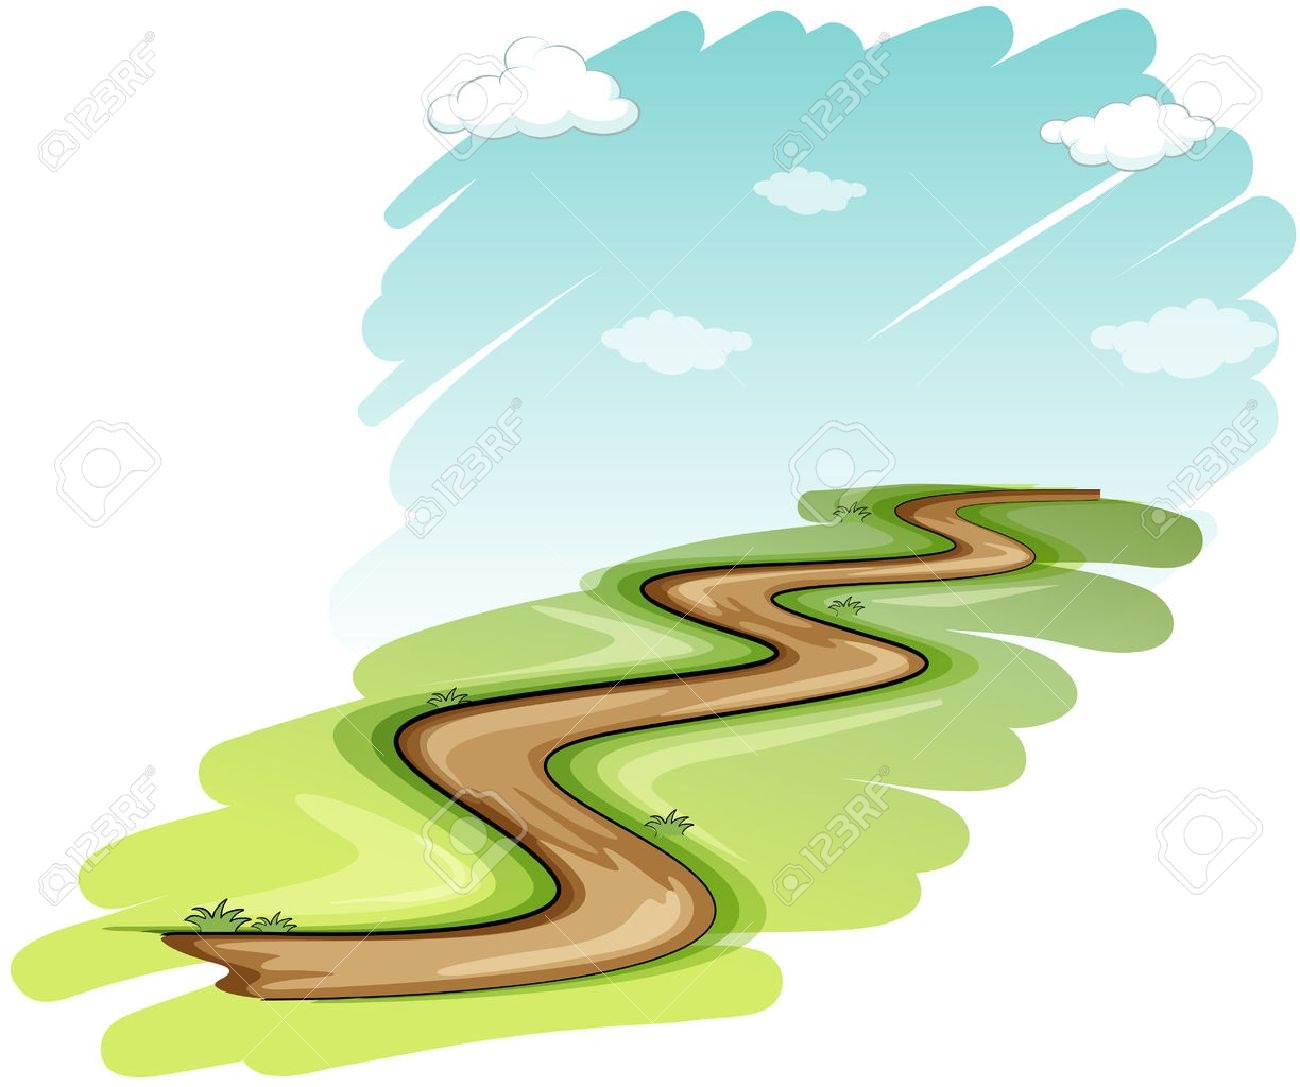 1300x1087 3,994 Pathway Drawing Stock Vector Illustration And Royalty Free